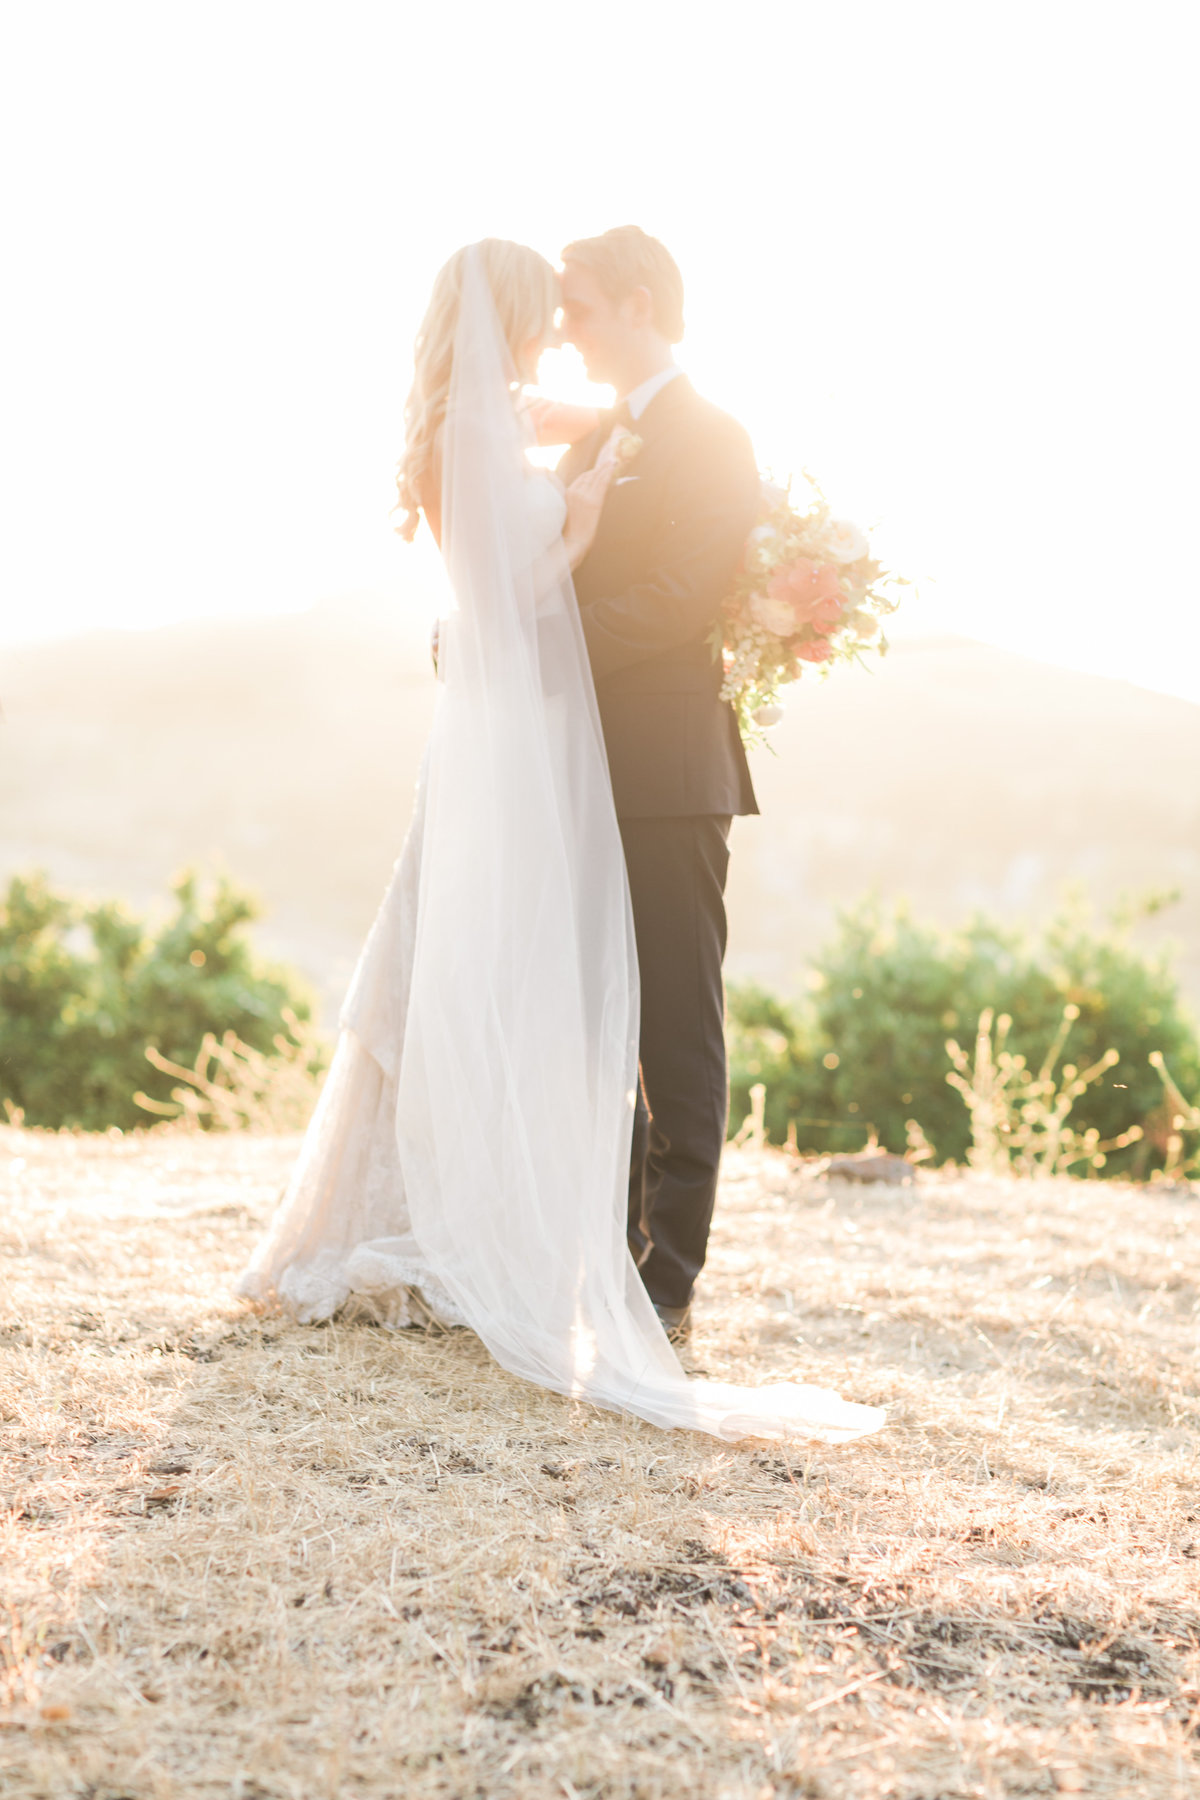 Quail_Ranch_Blush_California_Wedding_Valorie_Darling_Photography - 144 of 151